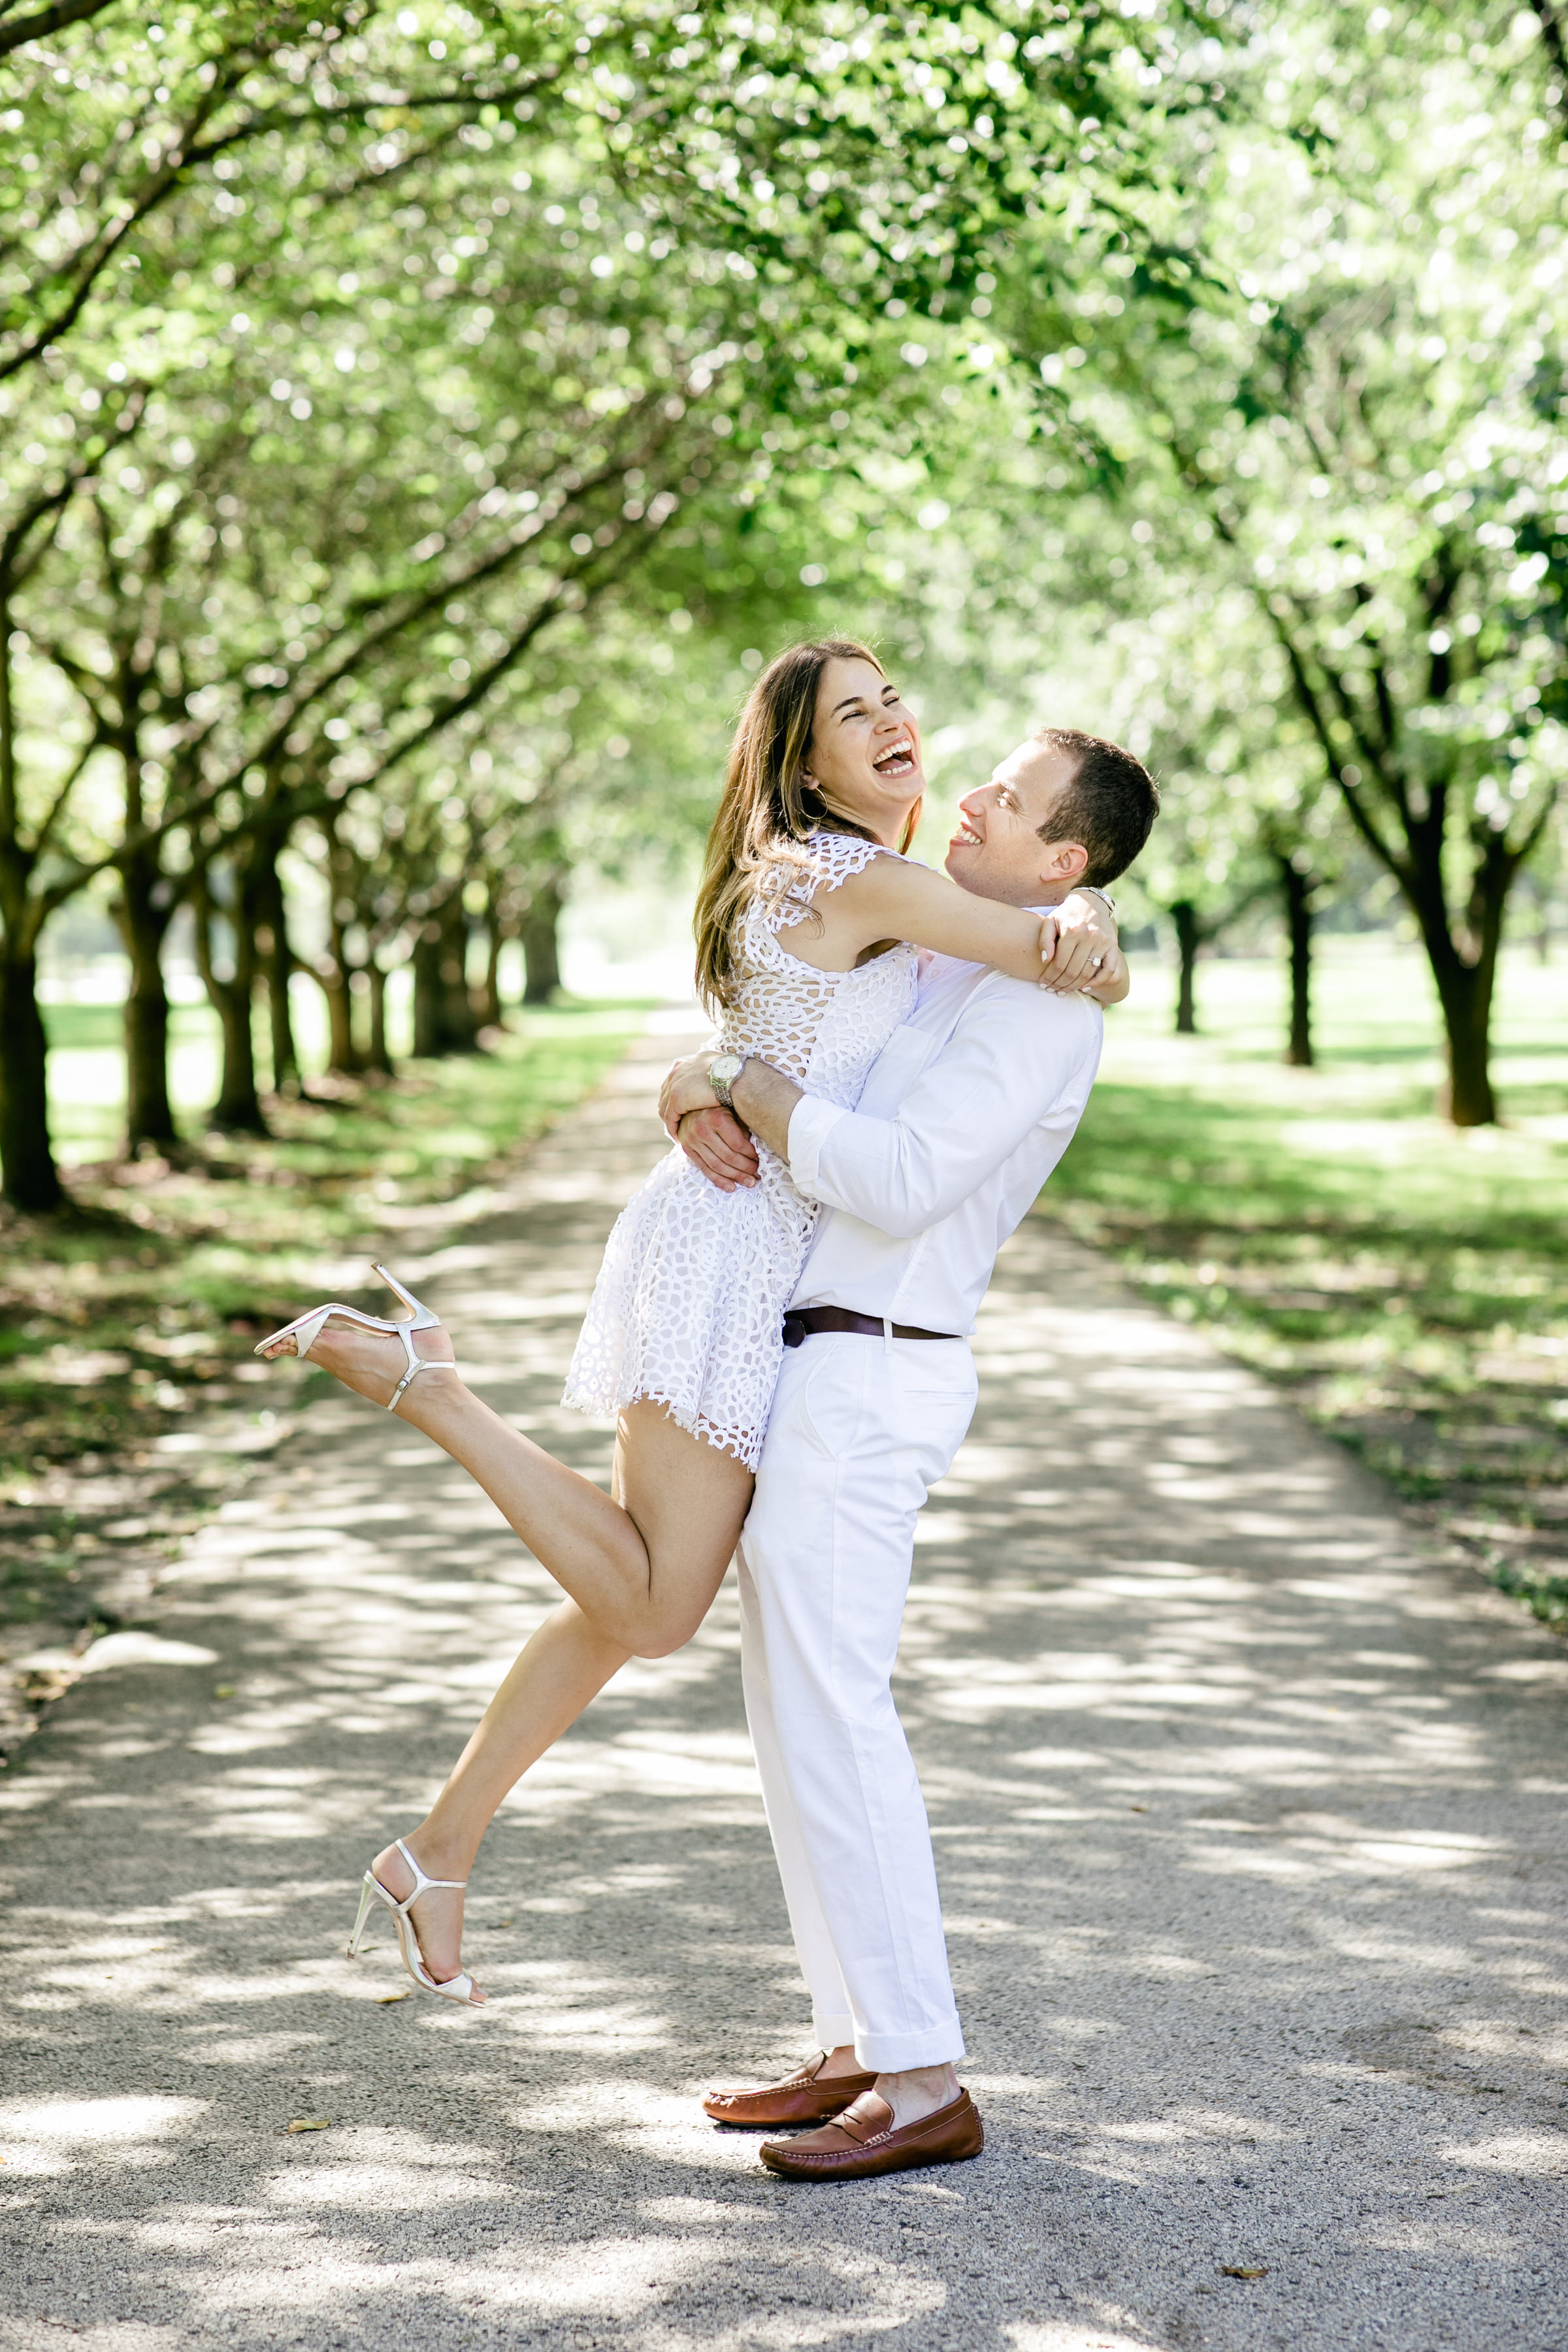 photography-family-natural-candid-engaged-fairmount-philadelphia-wedding-horticultural center-modern-lifestyle-05.JPG